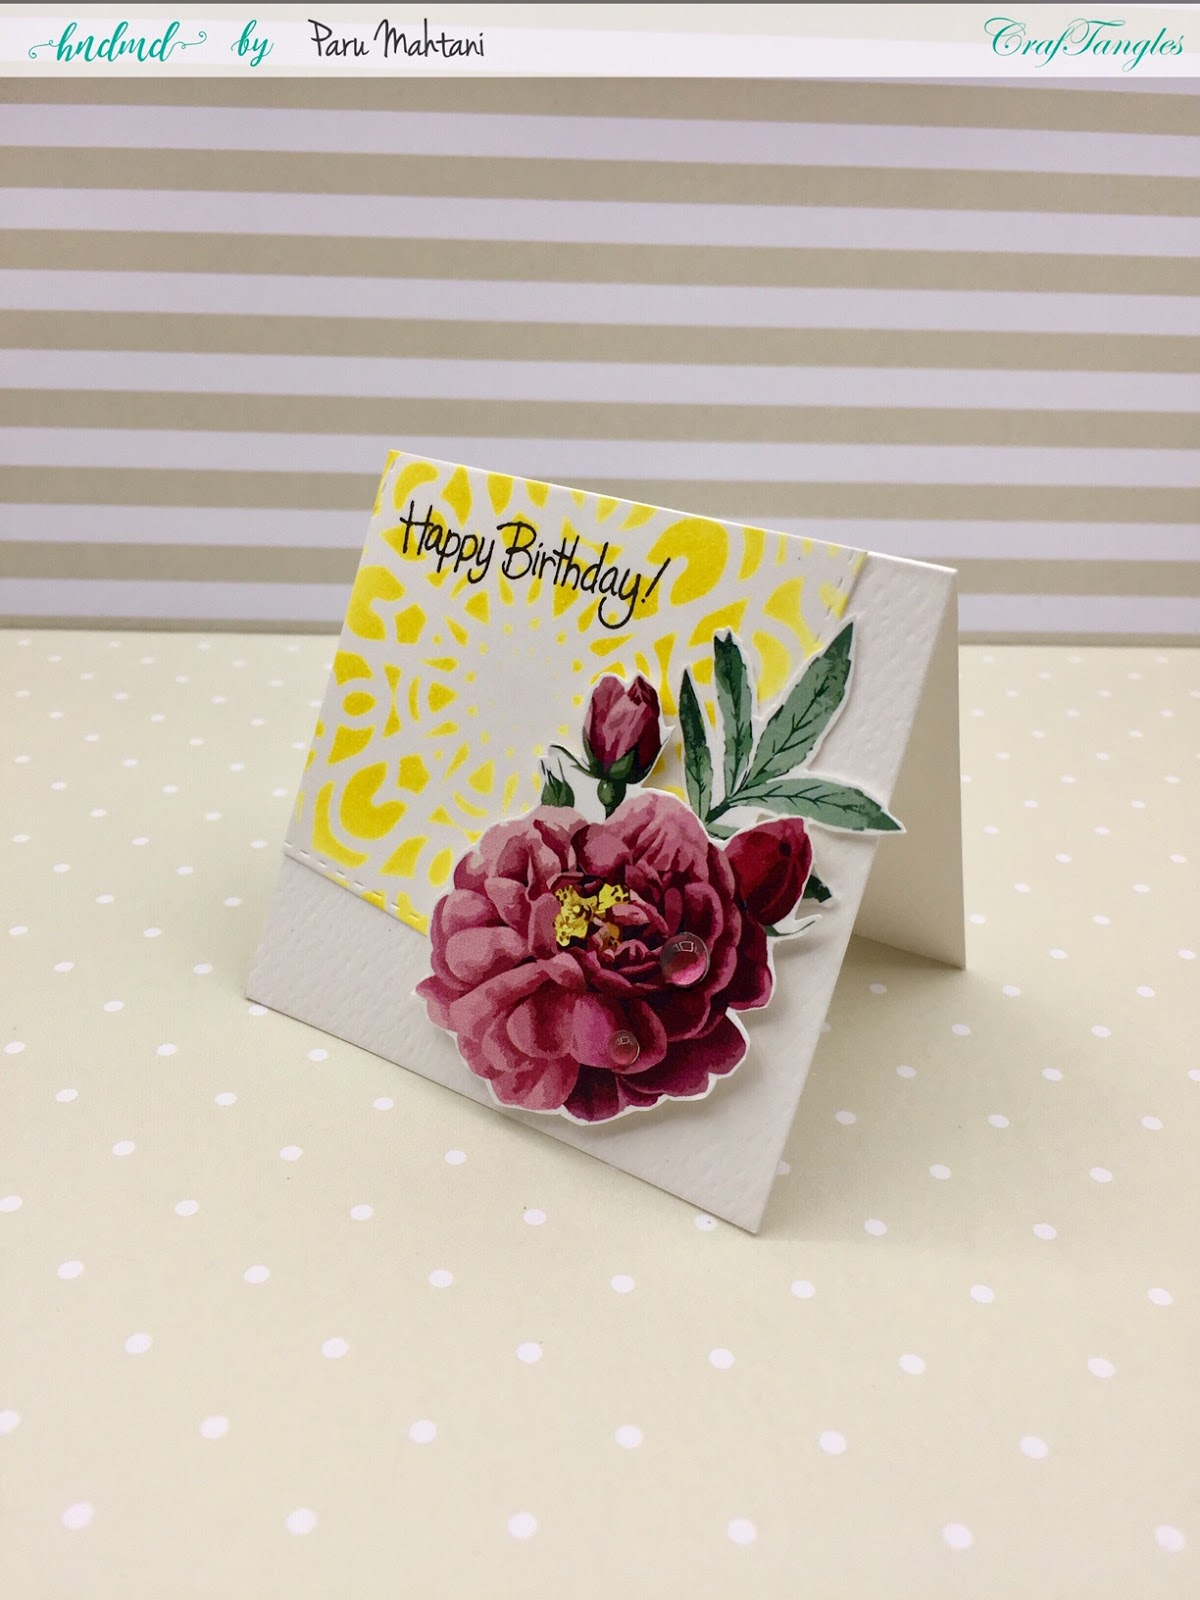 CrafTangles June 2019 Challenge - Anything Goes 3